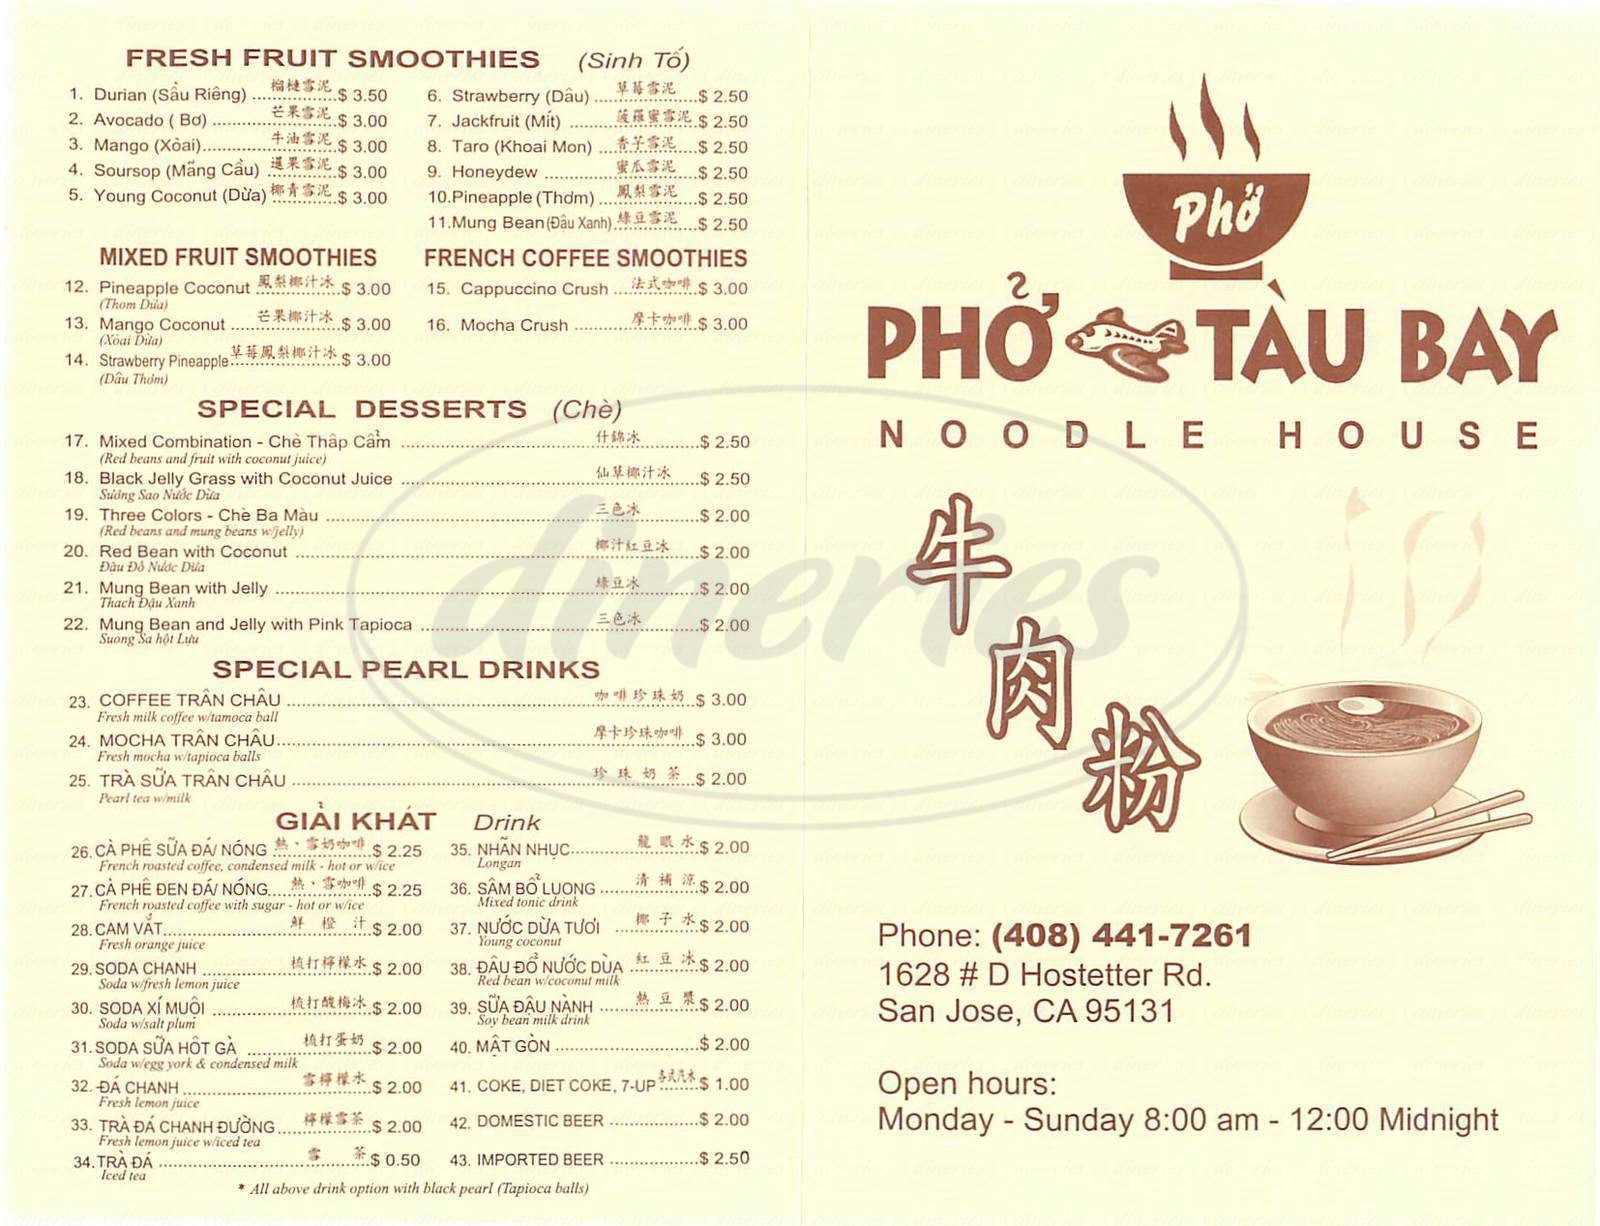 menu for Pho Tau Bay